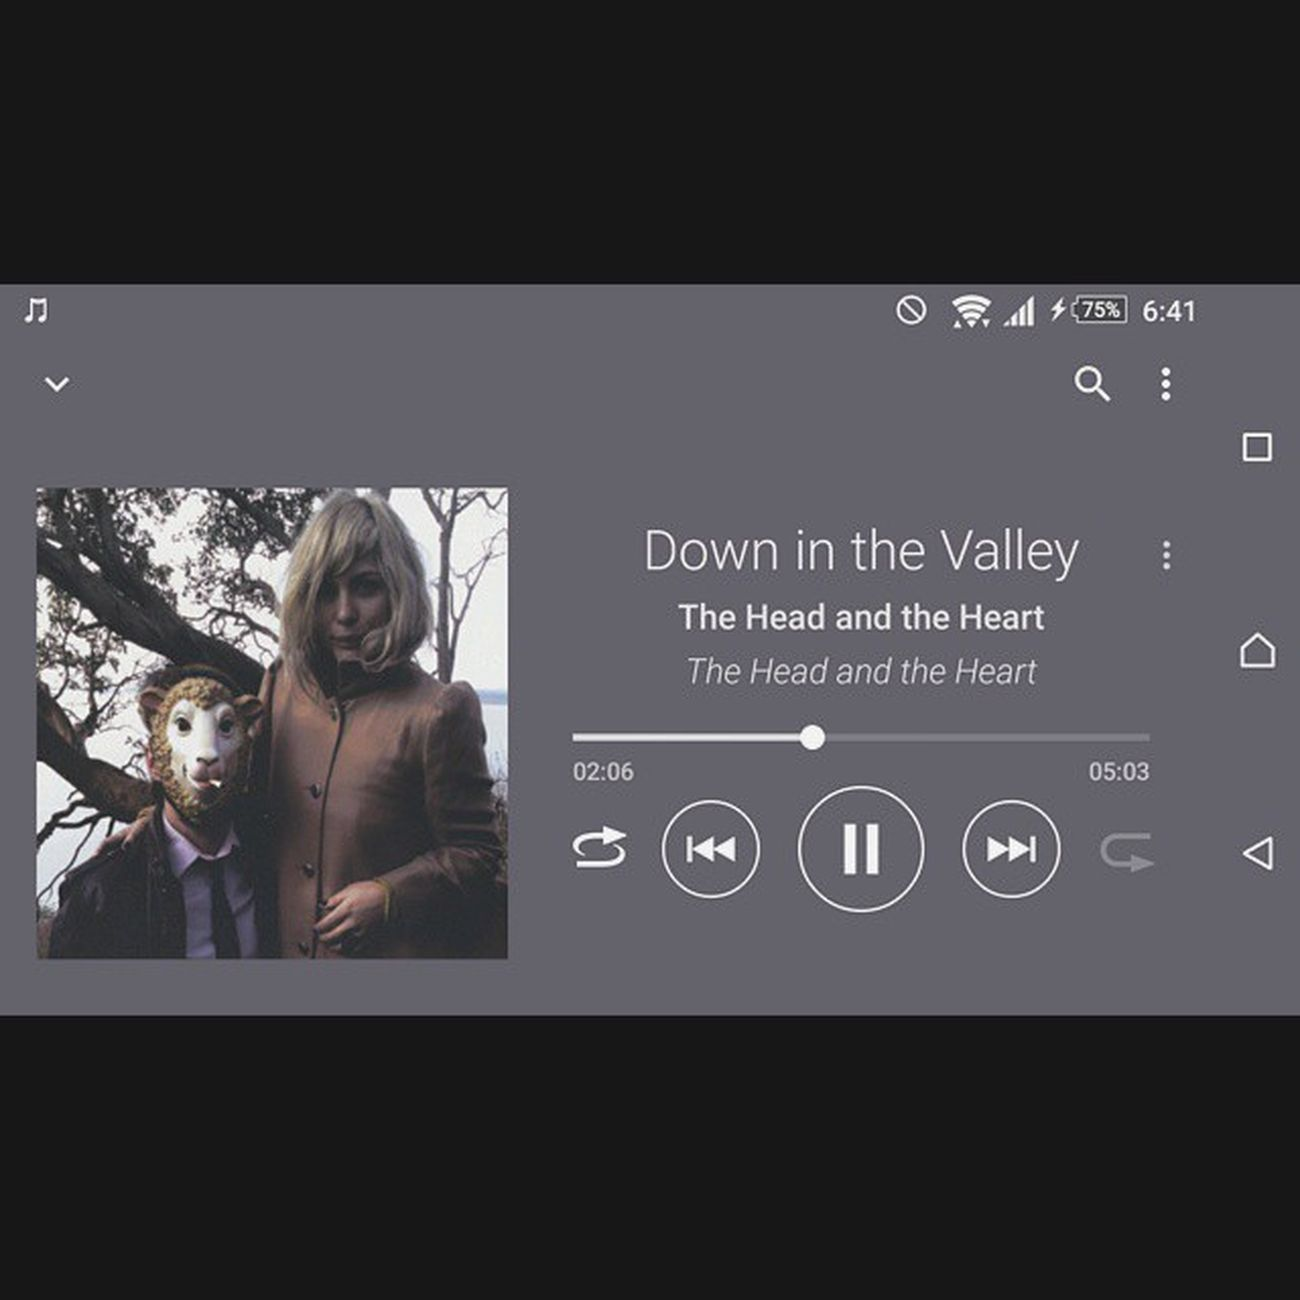 Setting mood for drawing, Theheadandtheheart